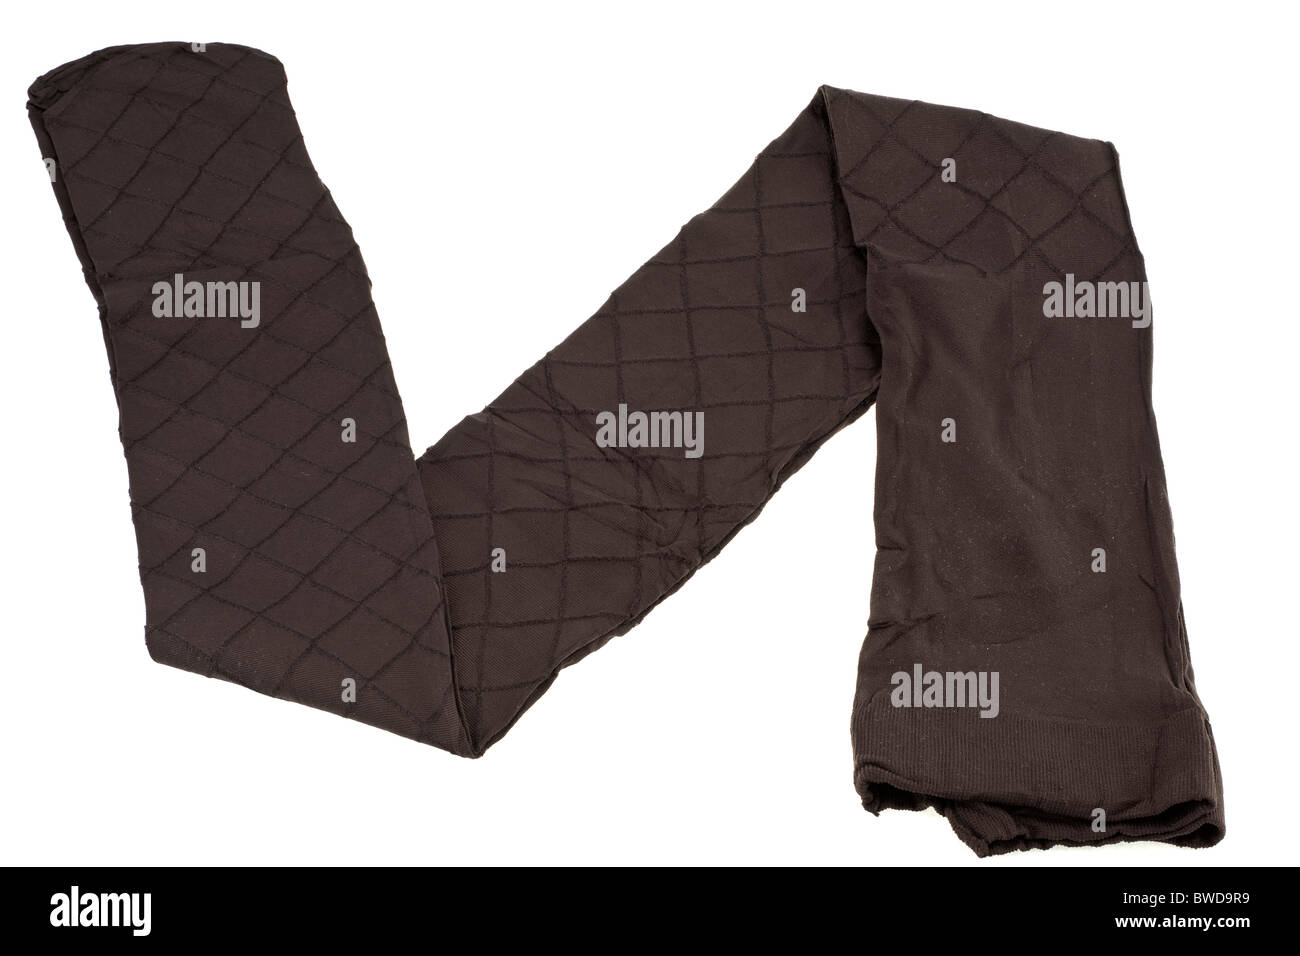 One pair of ladies brown diamond patterned tights - Stock Image